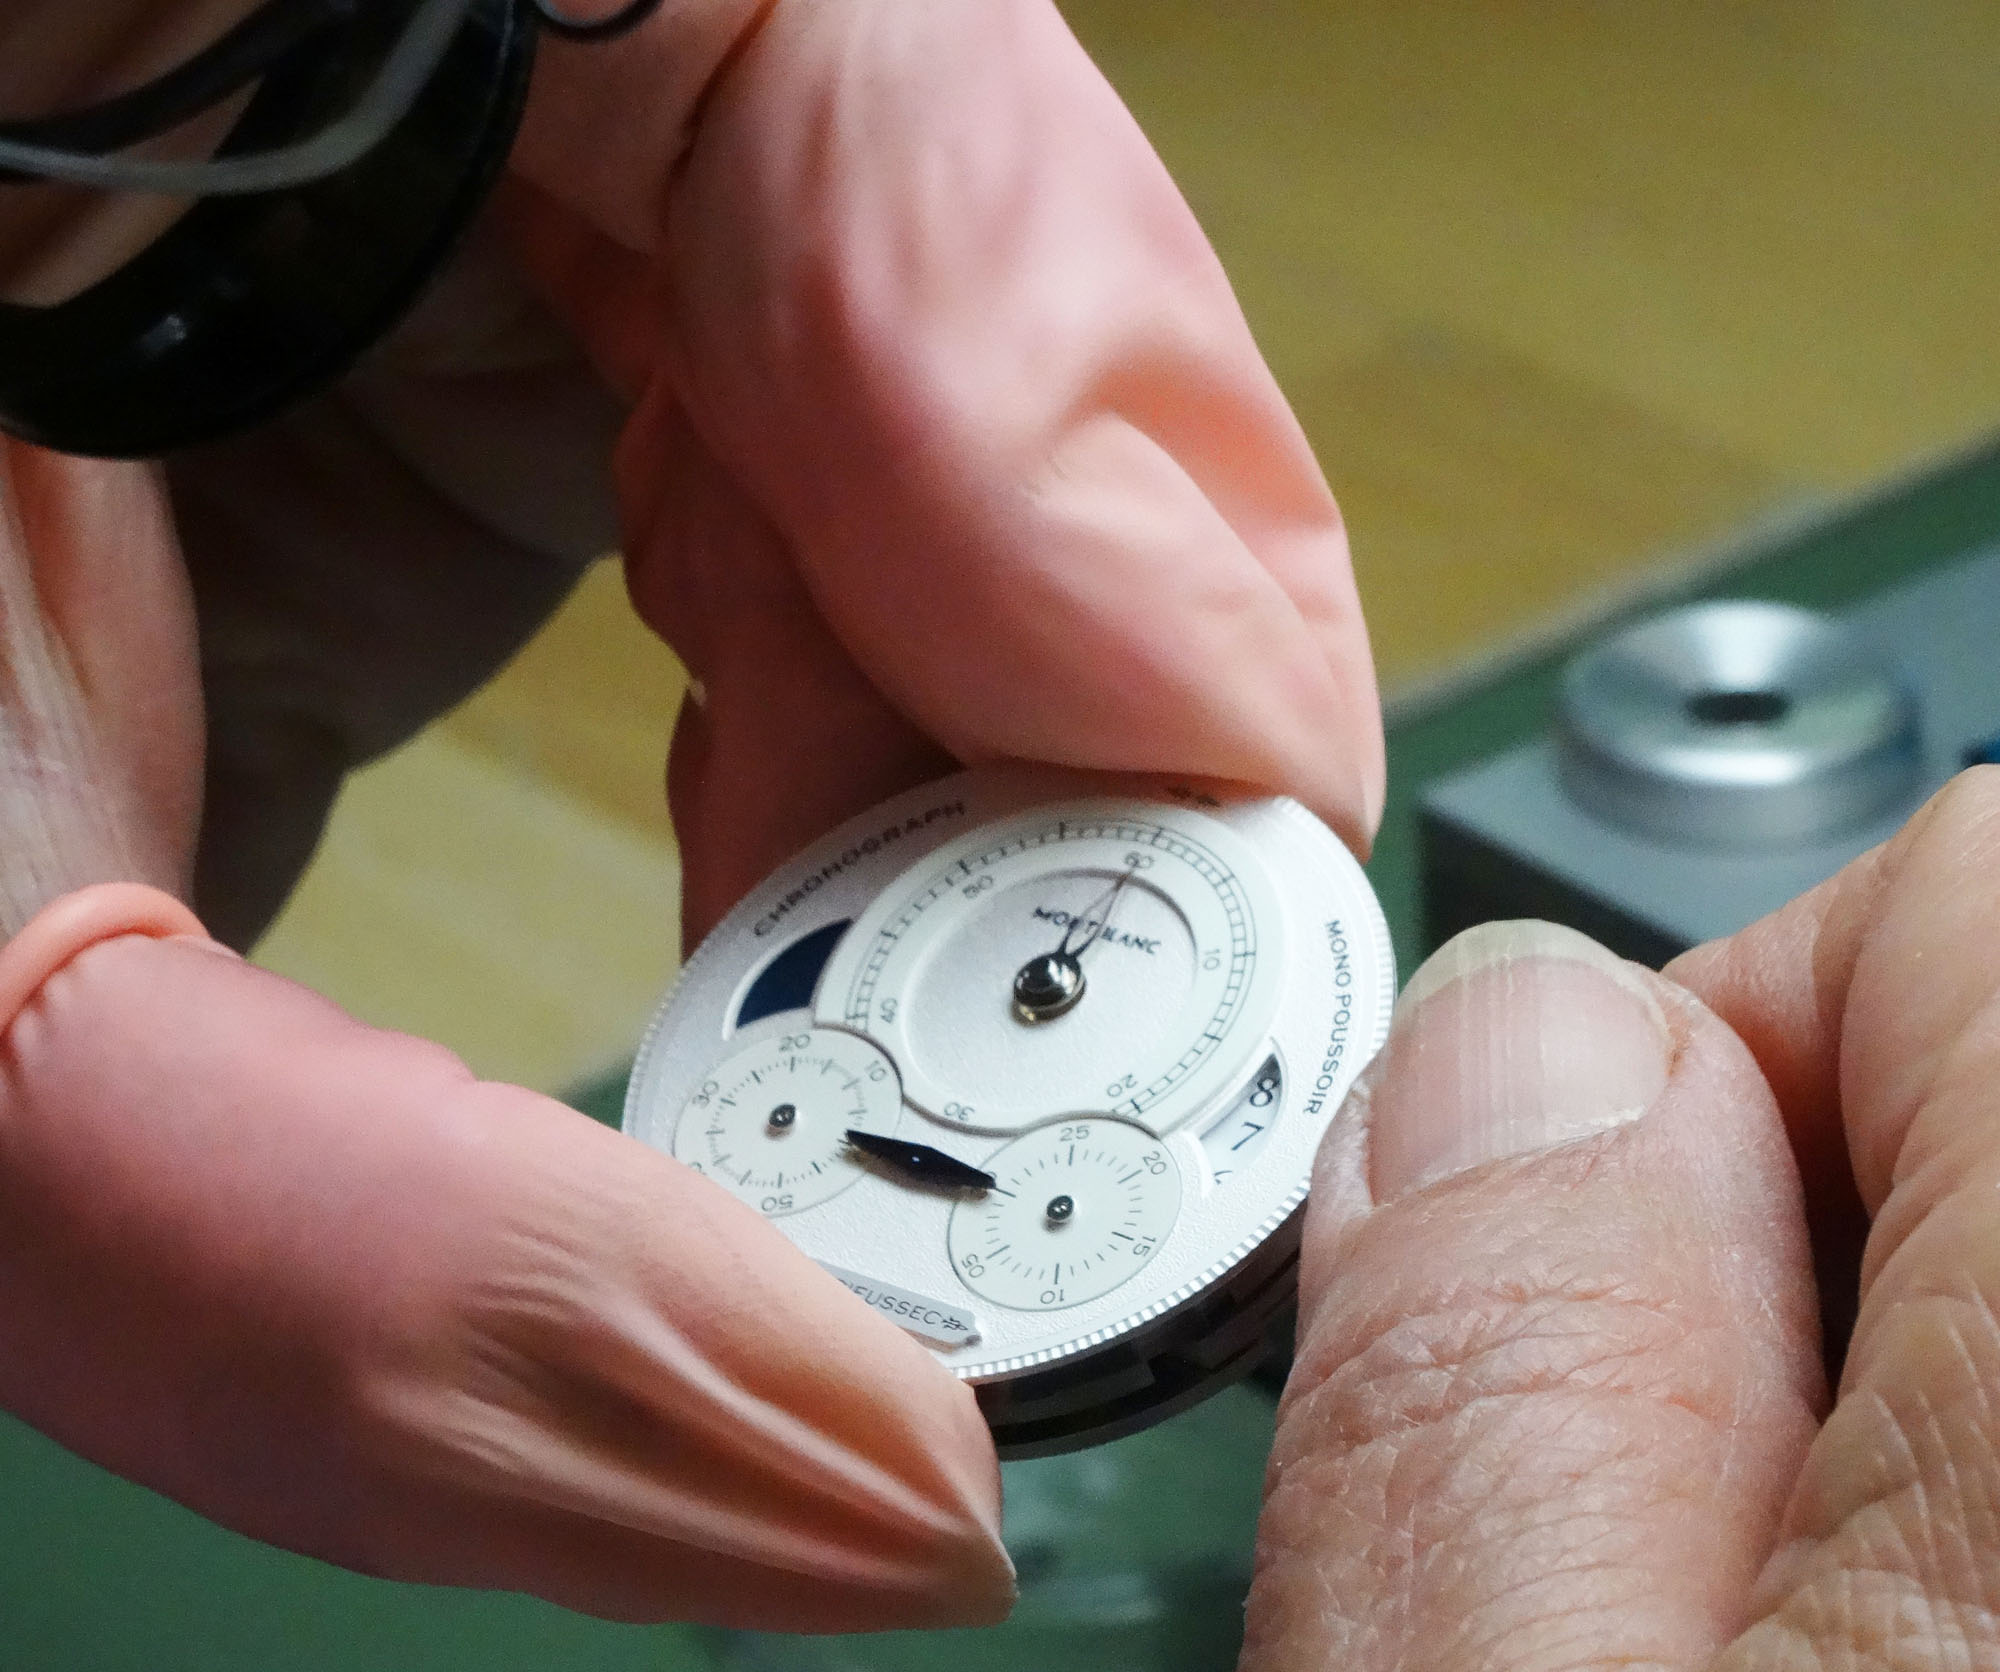 Watchmaker checking Course of Hands